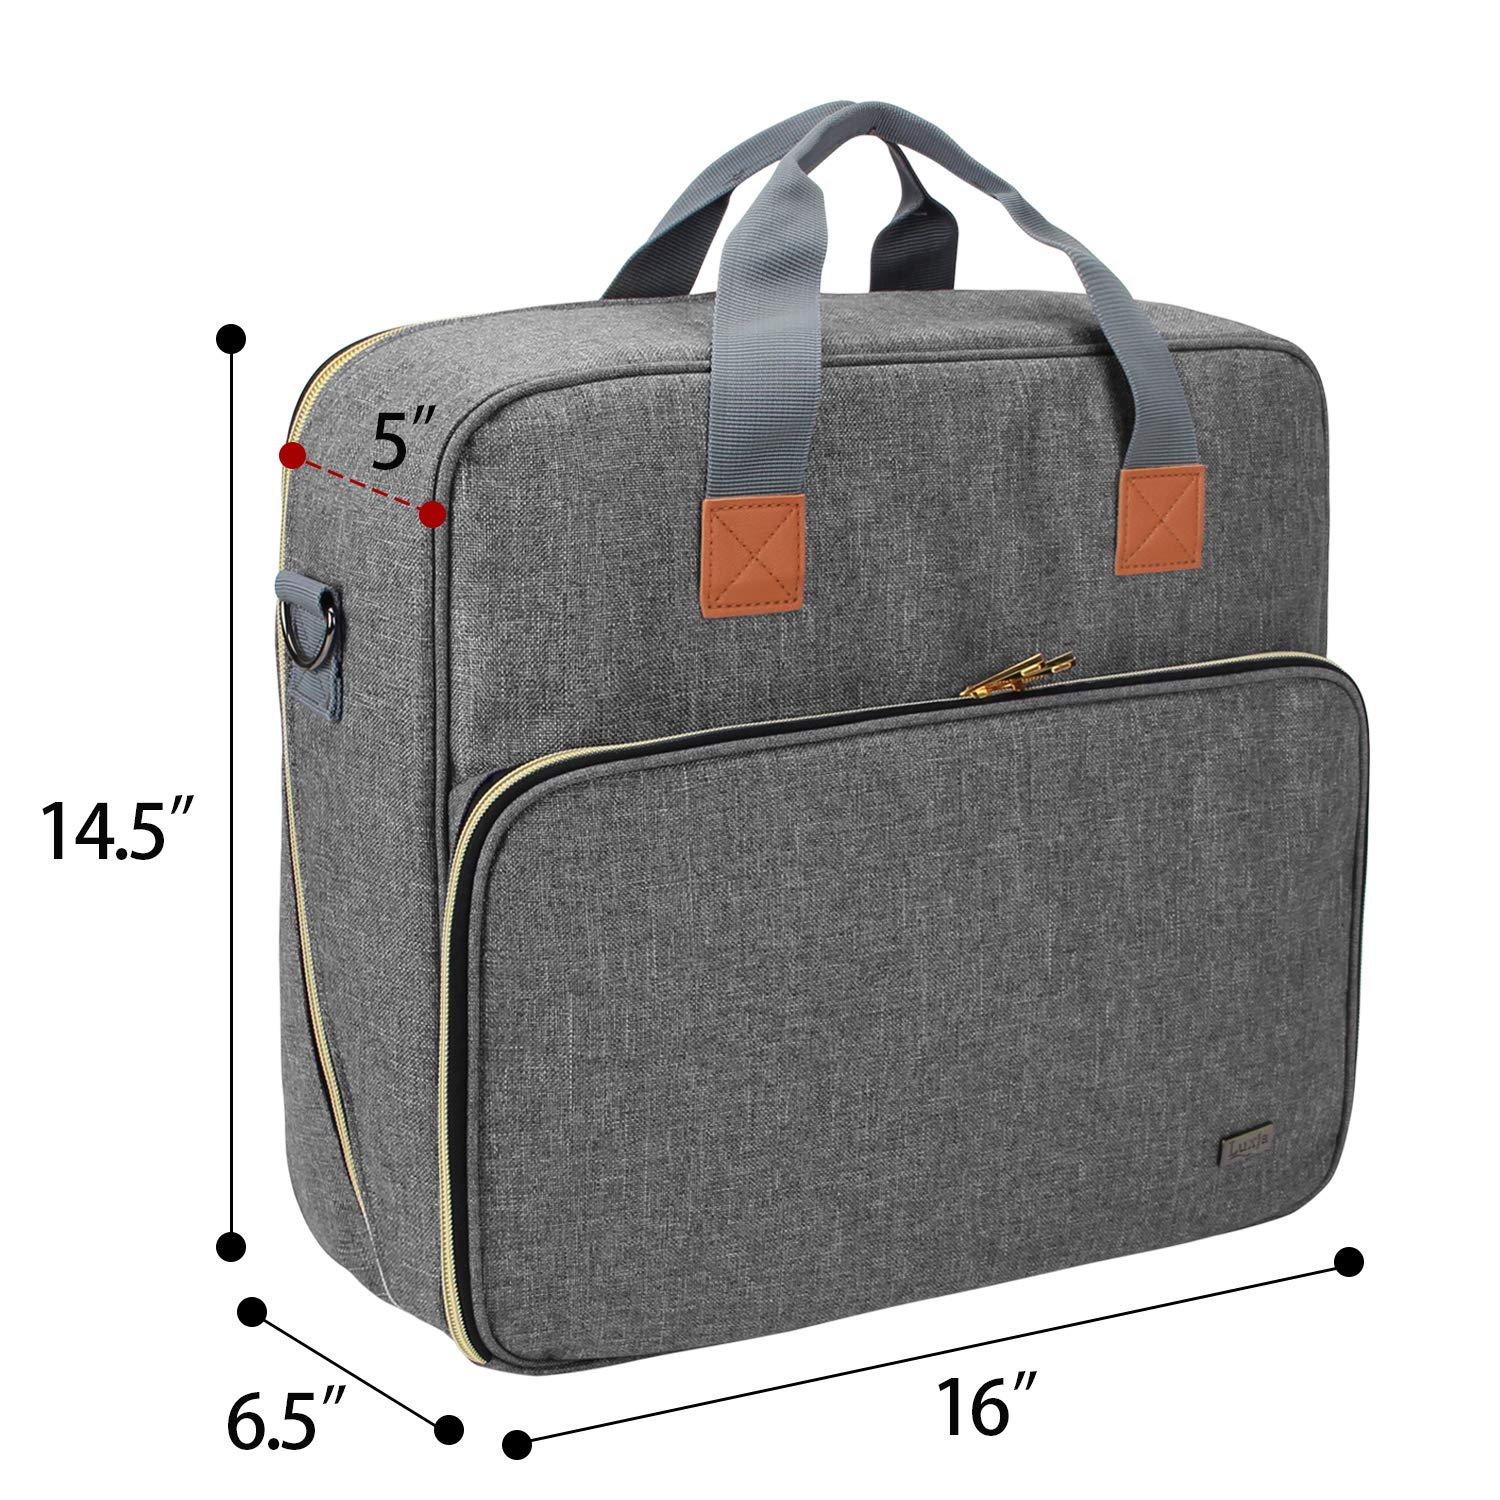 Bag Only Storage Case Compatible with Cricut Easy Press 2 and Accessories Luxja Carrying Bag Compatible with Cricut Easy Press 2 6 inches x 7 inches Black